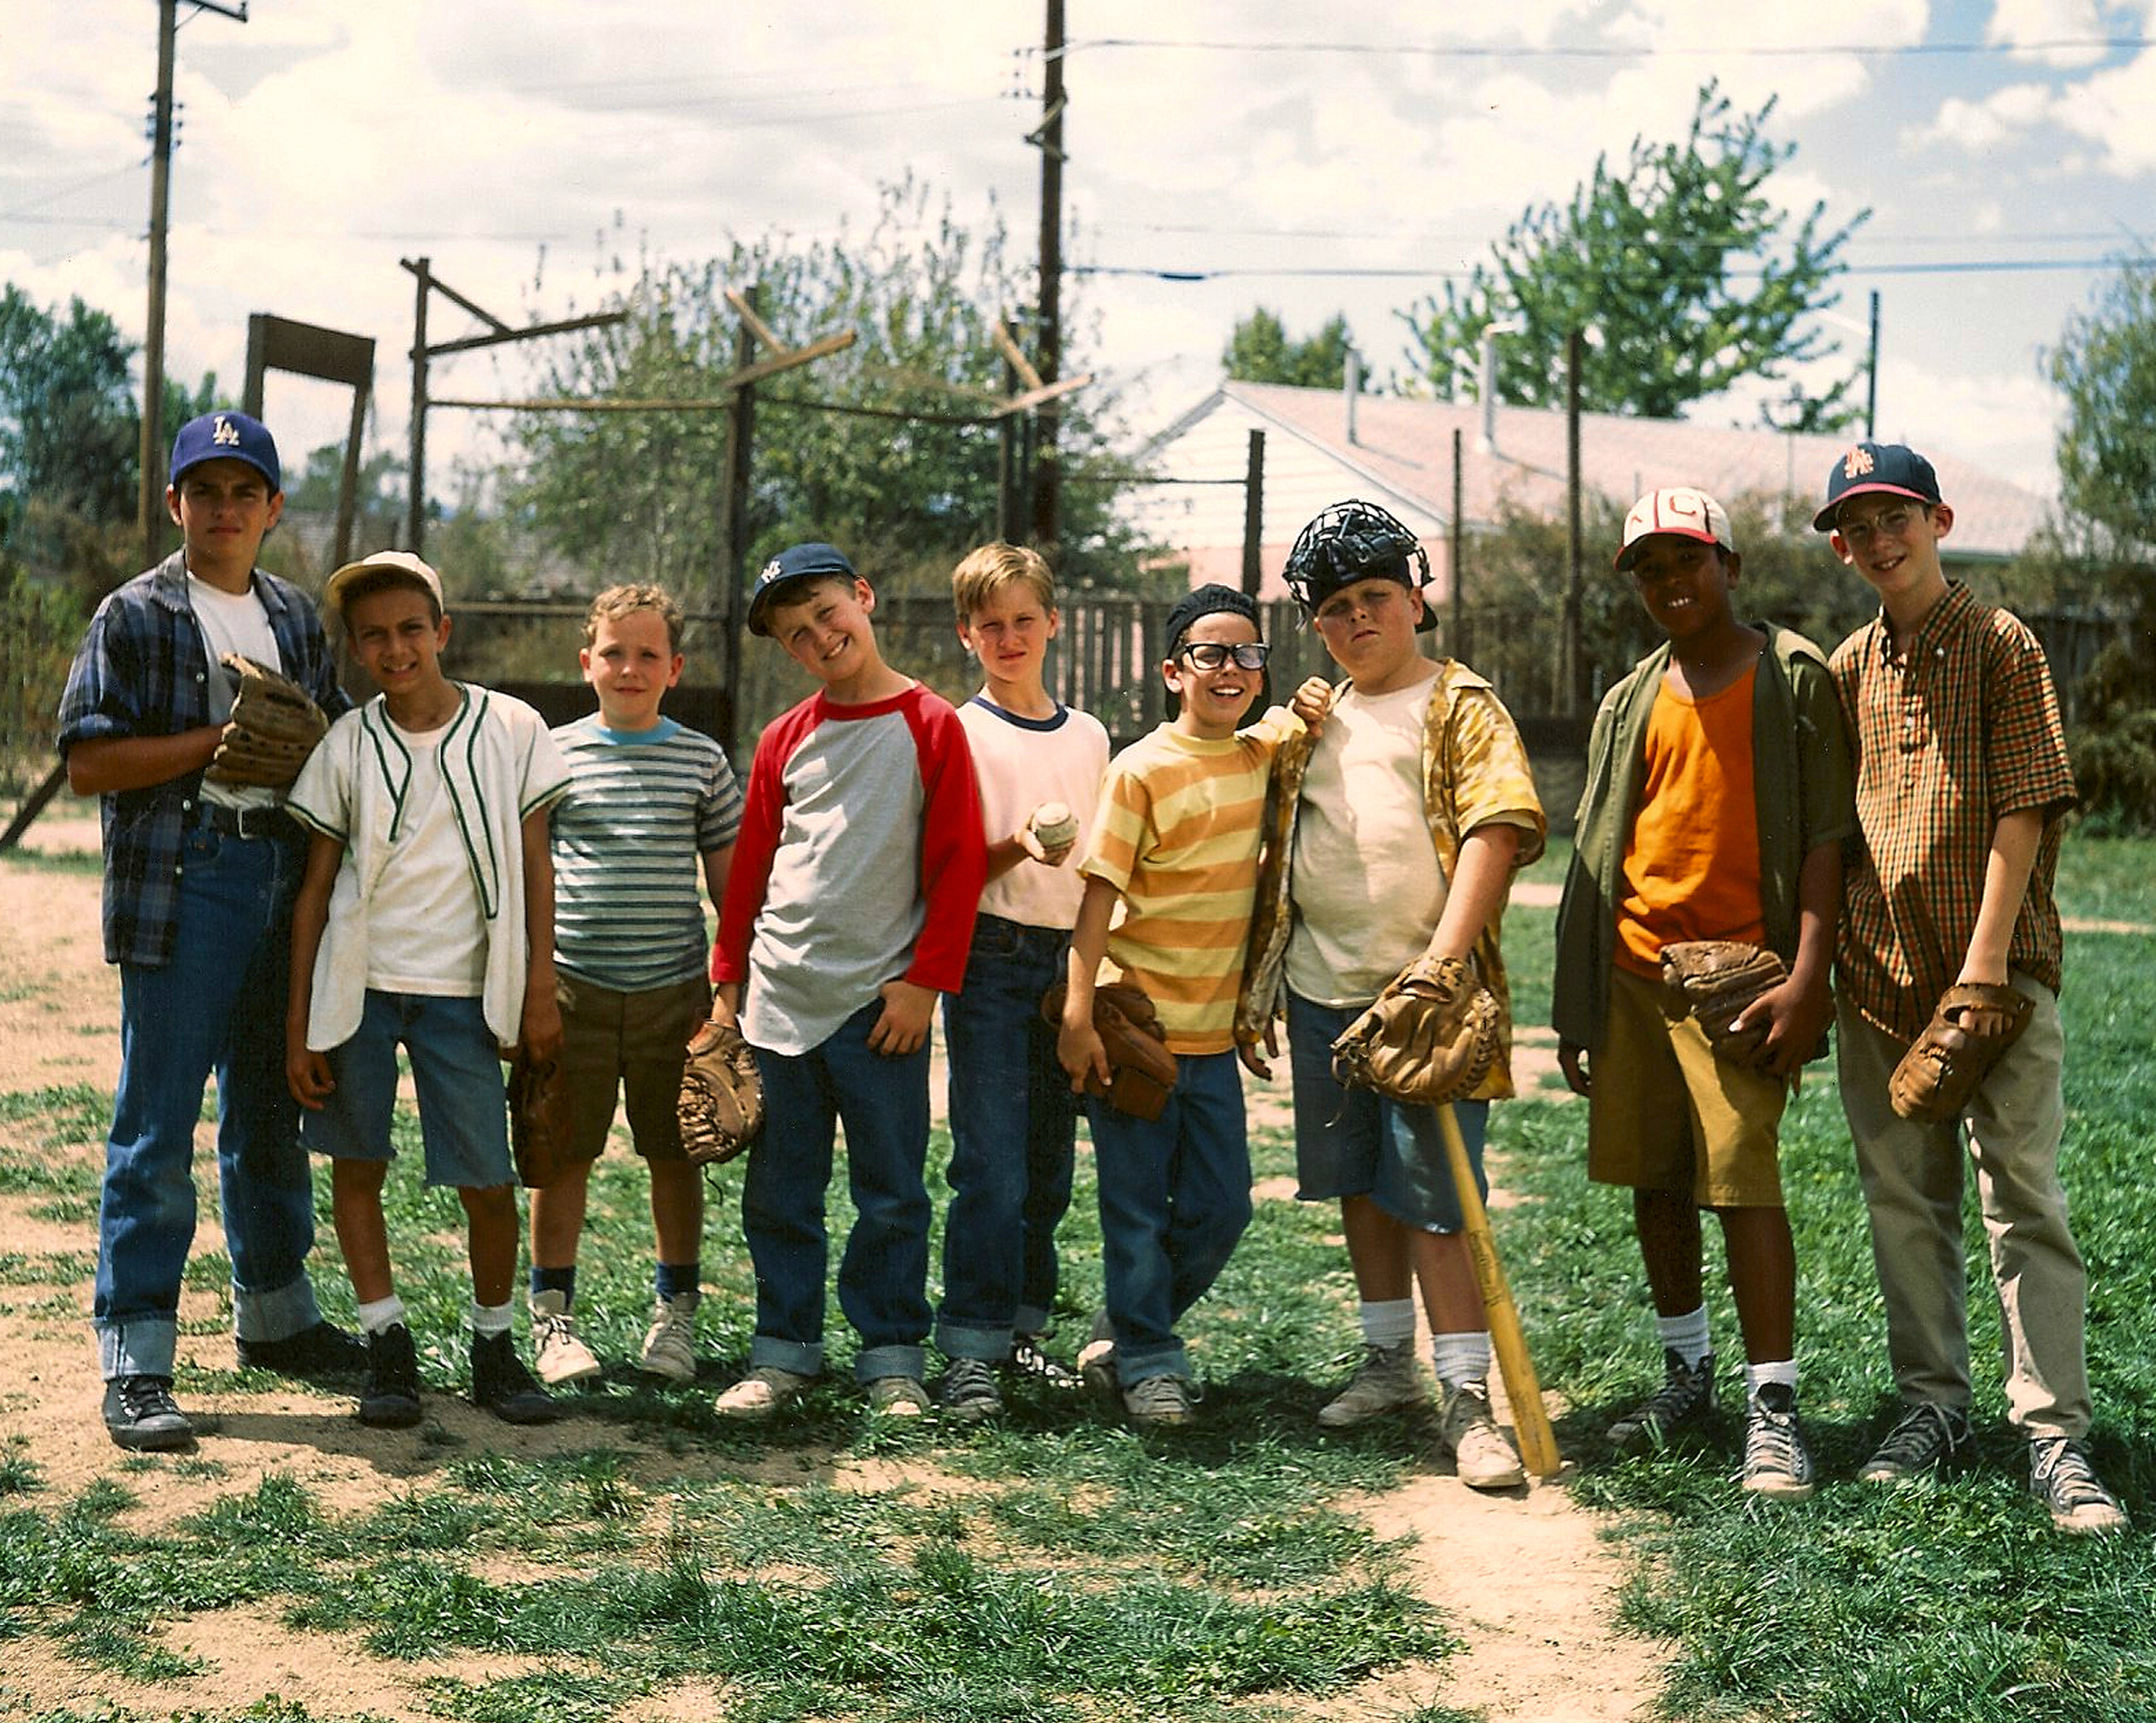 The Sandlot Wallpaper